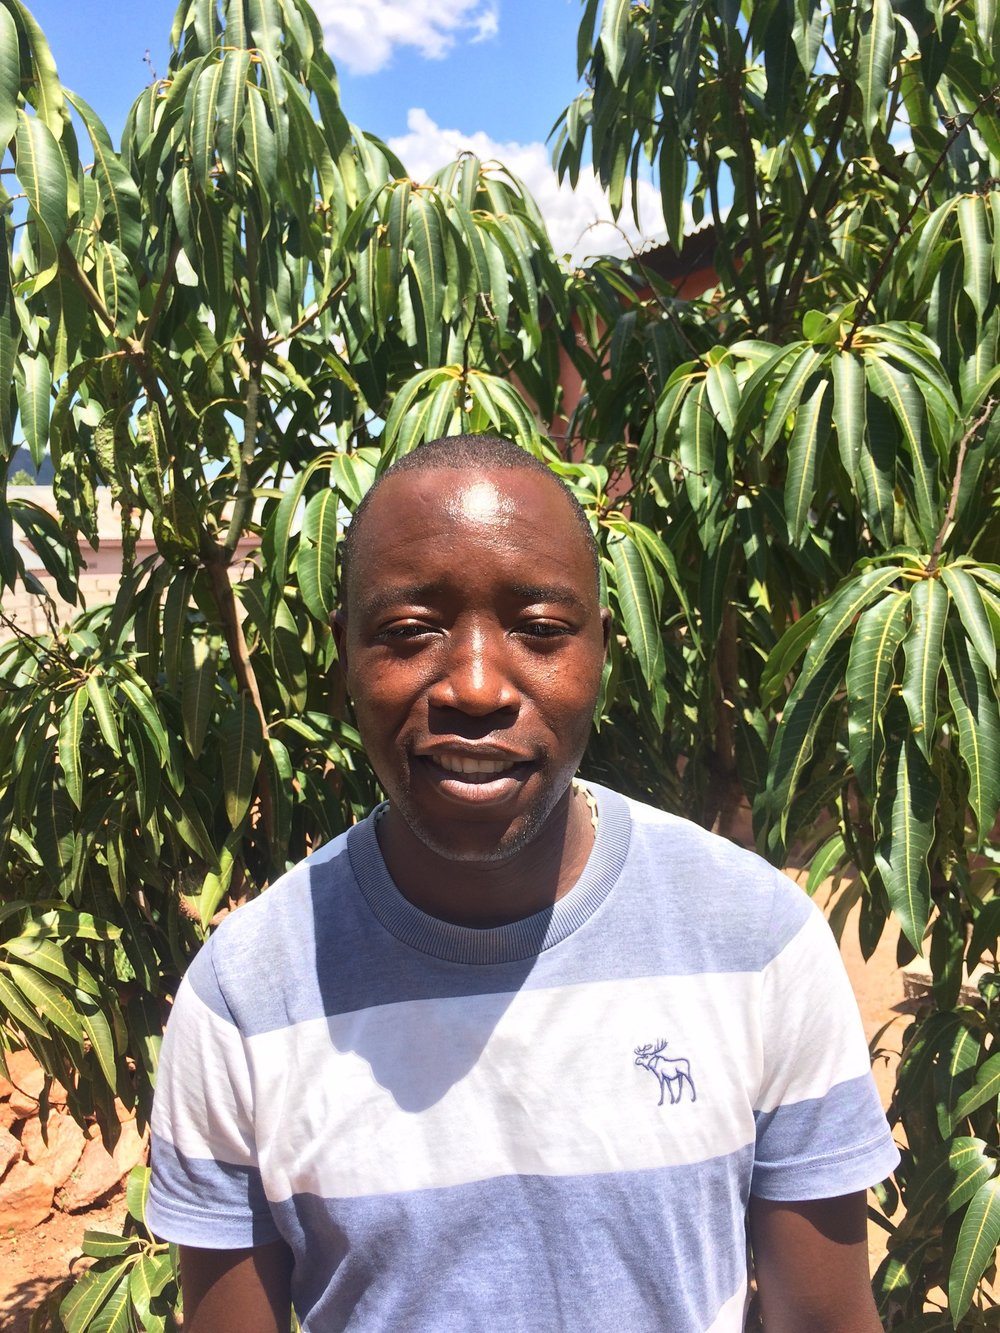 Noah Mwale, Operations Manager Katete   Noah holds a Bachelor of Theology with Education and a Certificate in Psychosocial Counselling. Before joining Impact Network he served as a Psychosocial Counsellor at St Francis Mission Hospital from 2010-2012, worked at the Gender Based Violence Survivor Support Project - World Vision Zambia from 2013-2014 and was a Data Associate for CASH Project from 2015-2016. Noah joined Impact Network in 2017 as an Operations Manager for Katete.